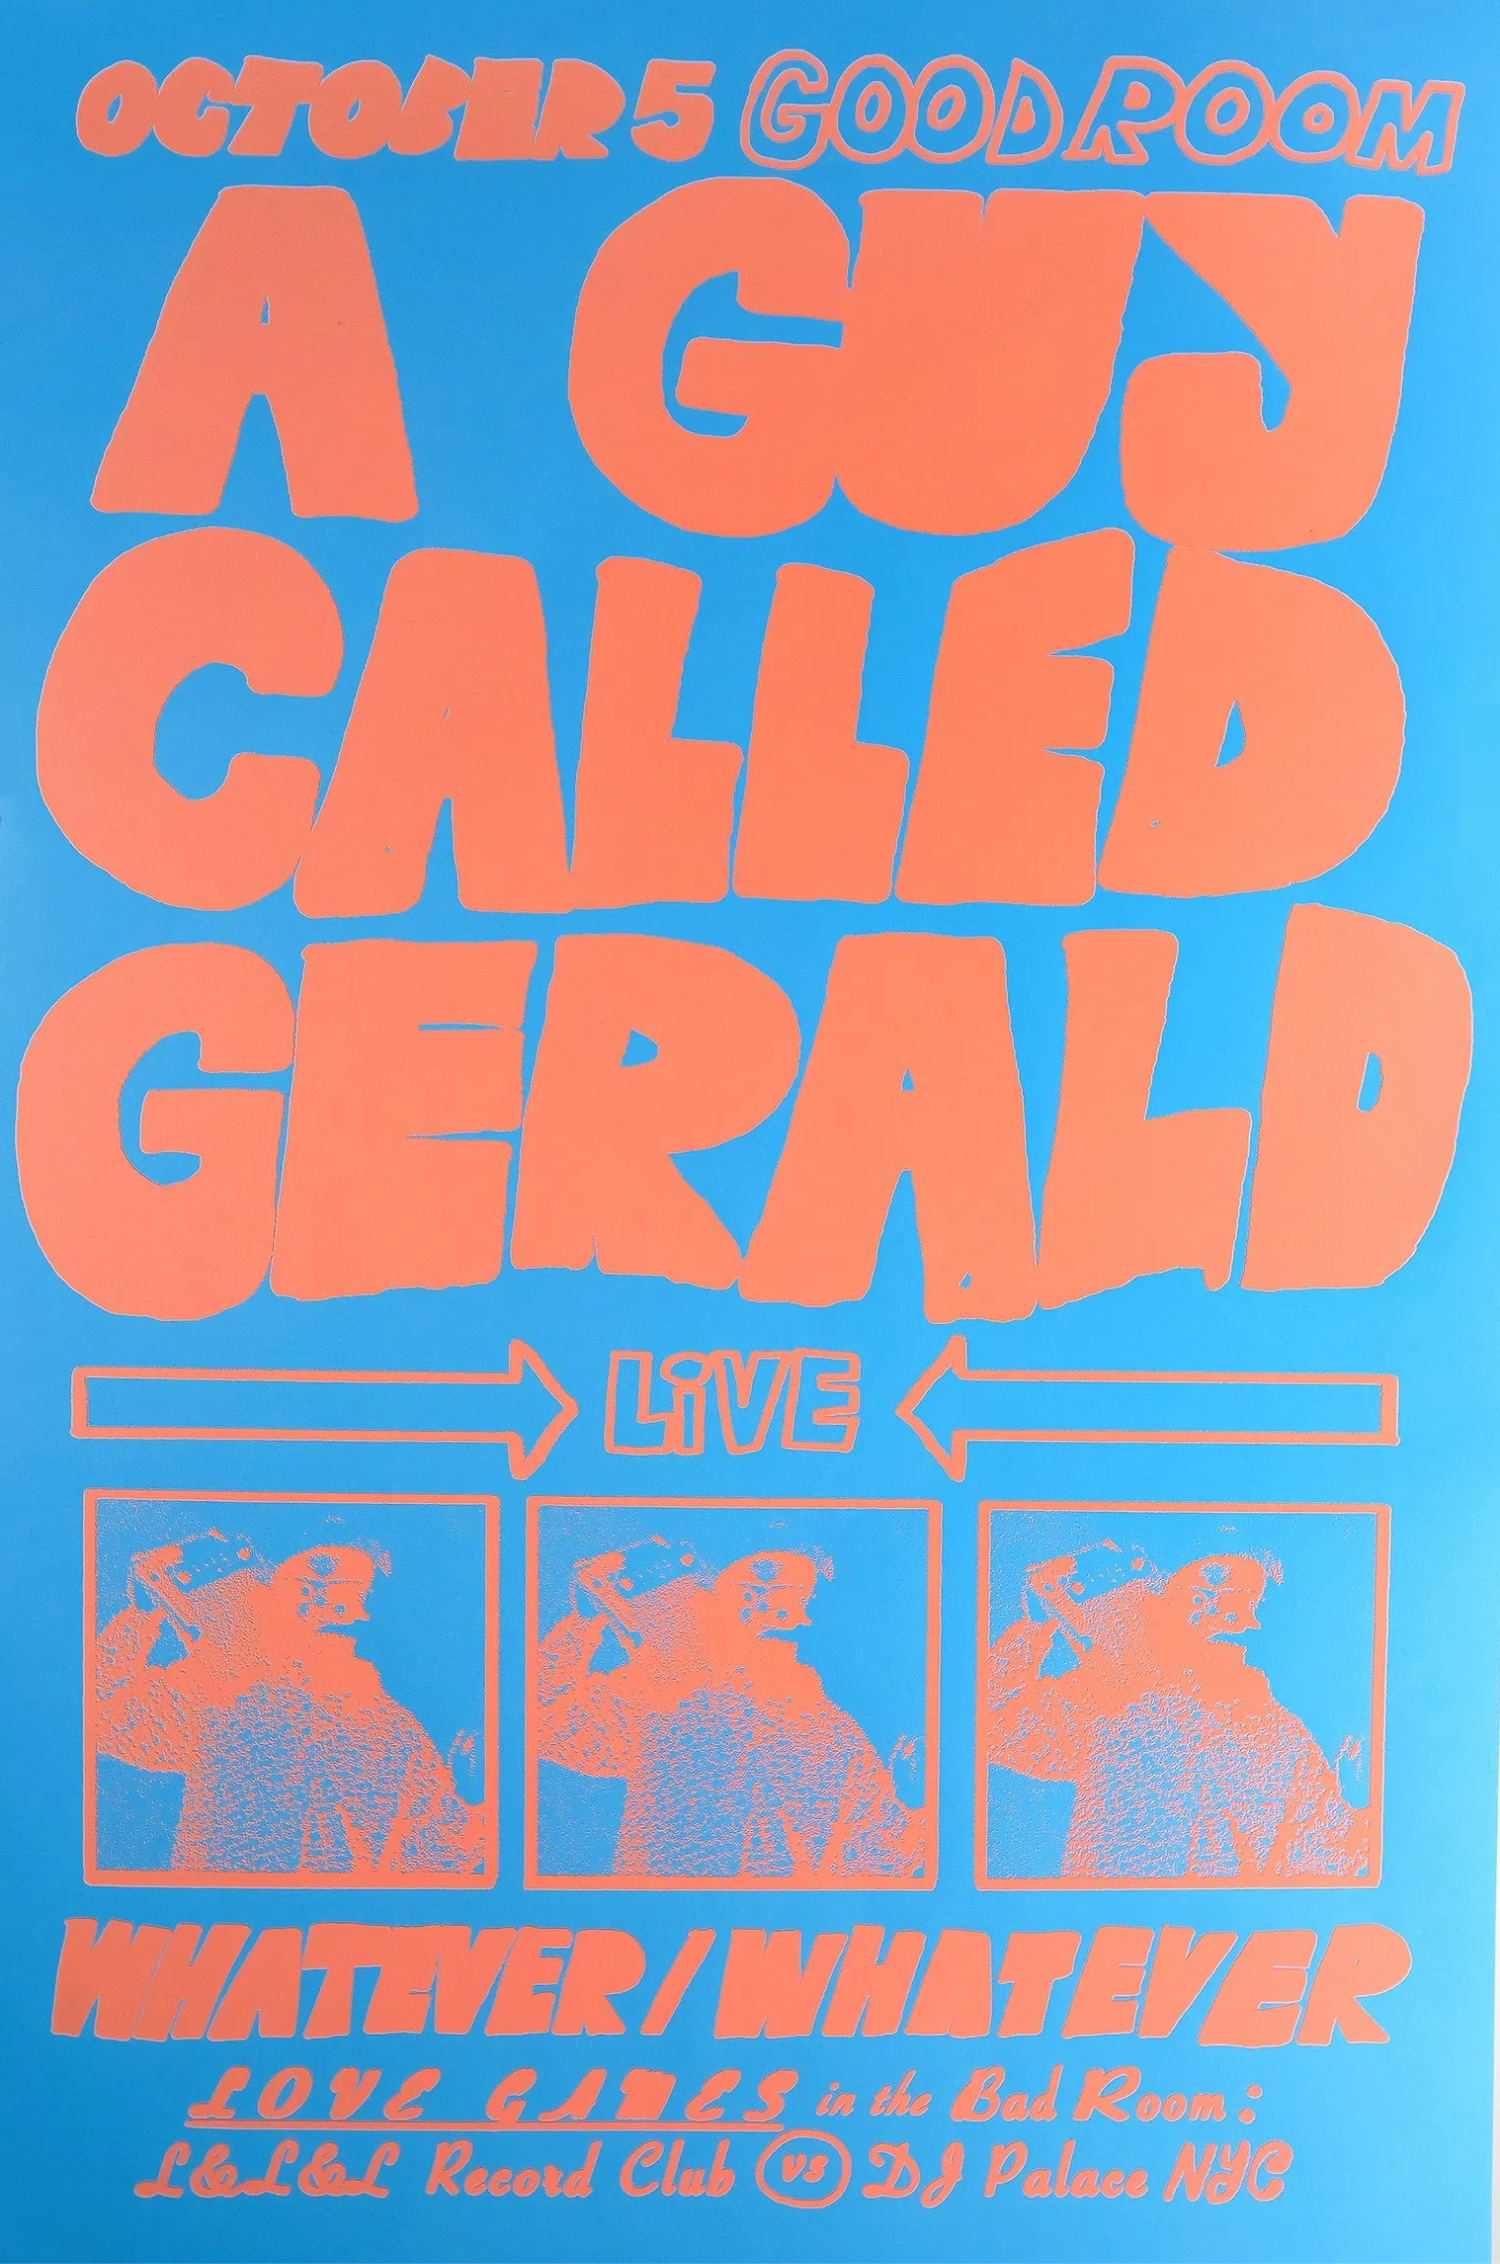 A Guy Called Gerald / Good Room Poster, $70  — Bráulio Amado, SSHH